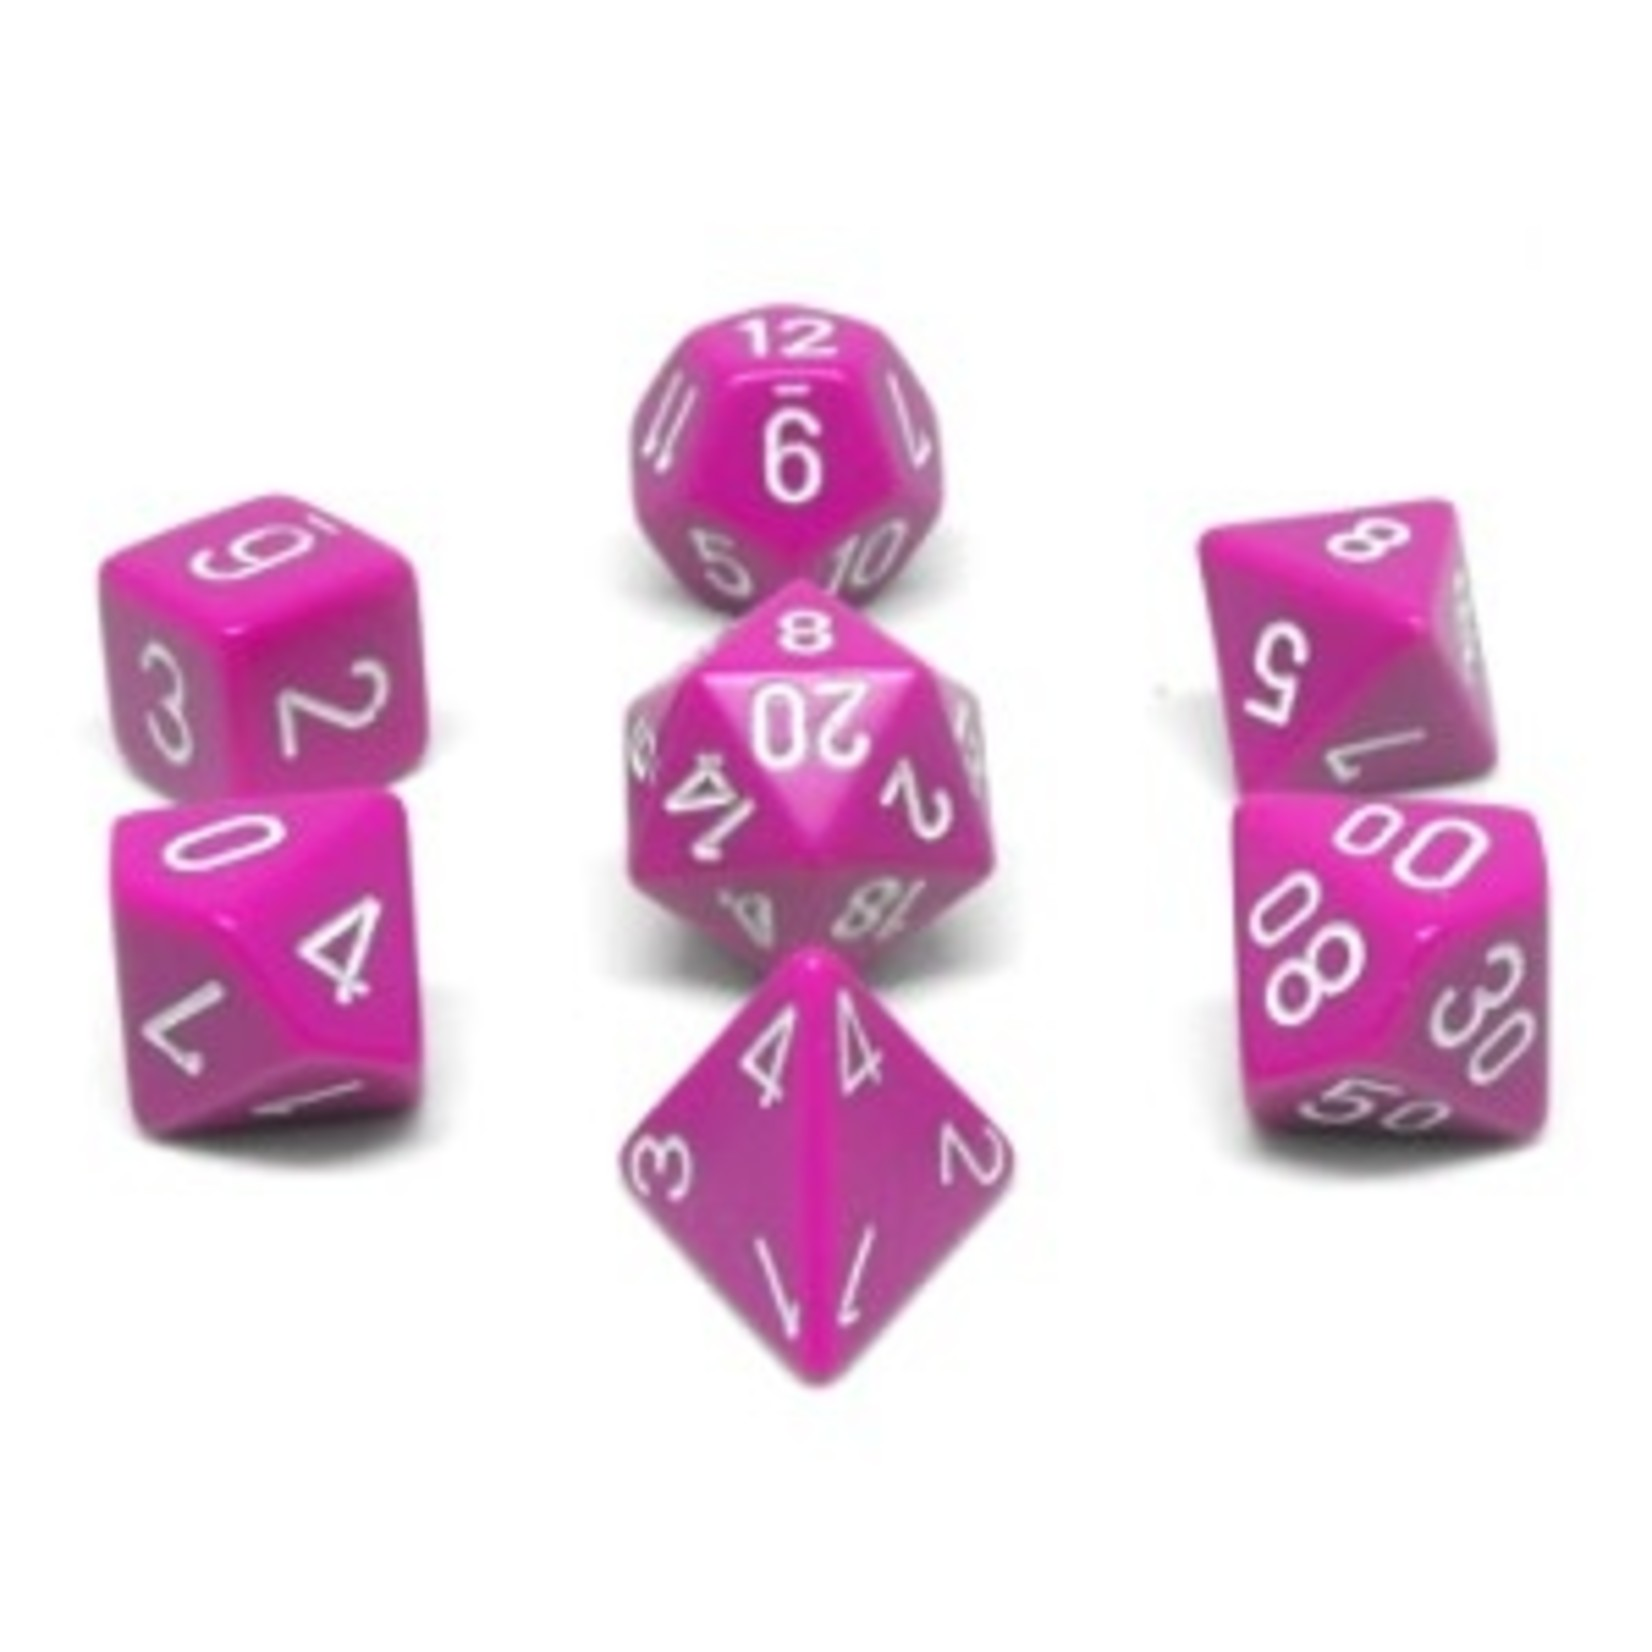 Chessex Set 7D Opaques pale Violet with white numbers